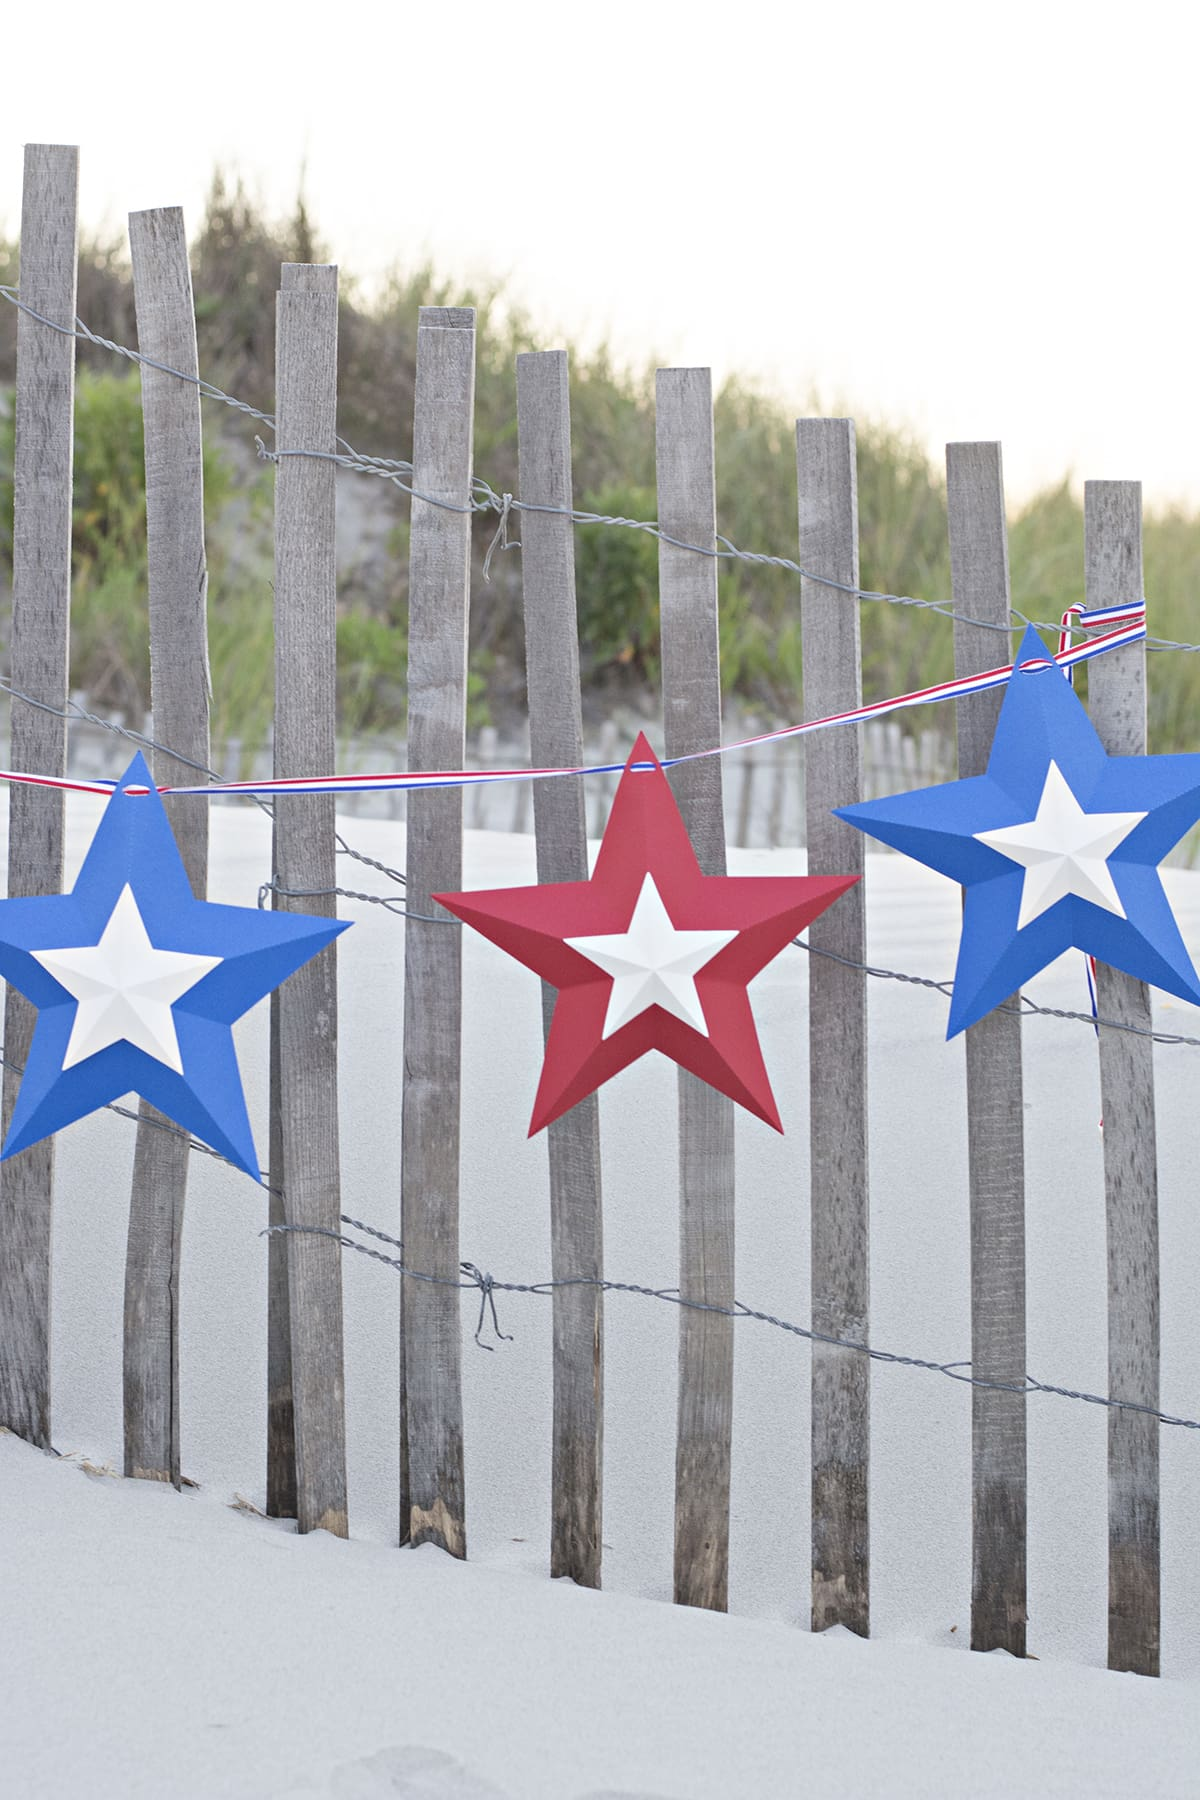 patriotic star bunting hanging on the fence in the beach dunes